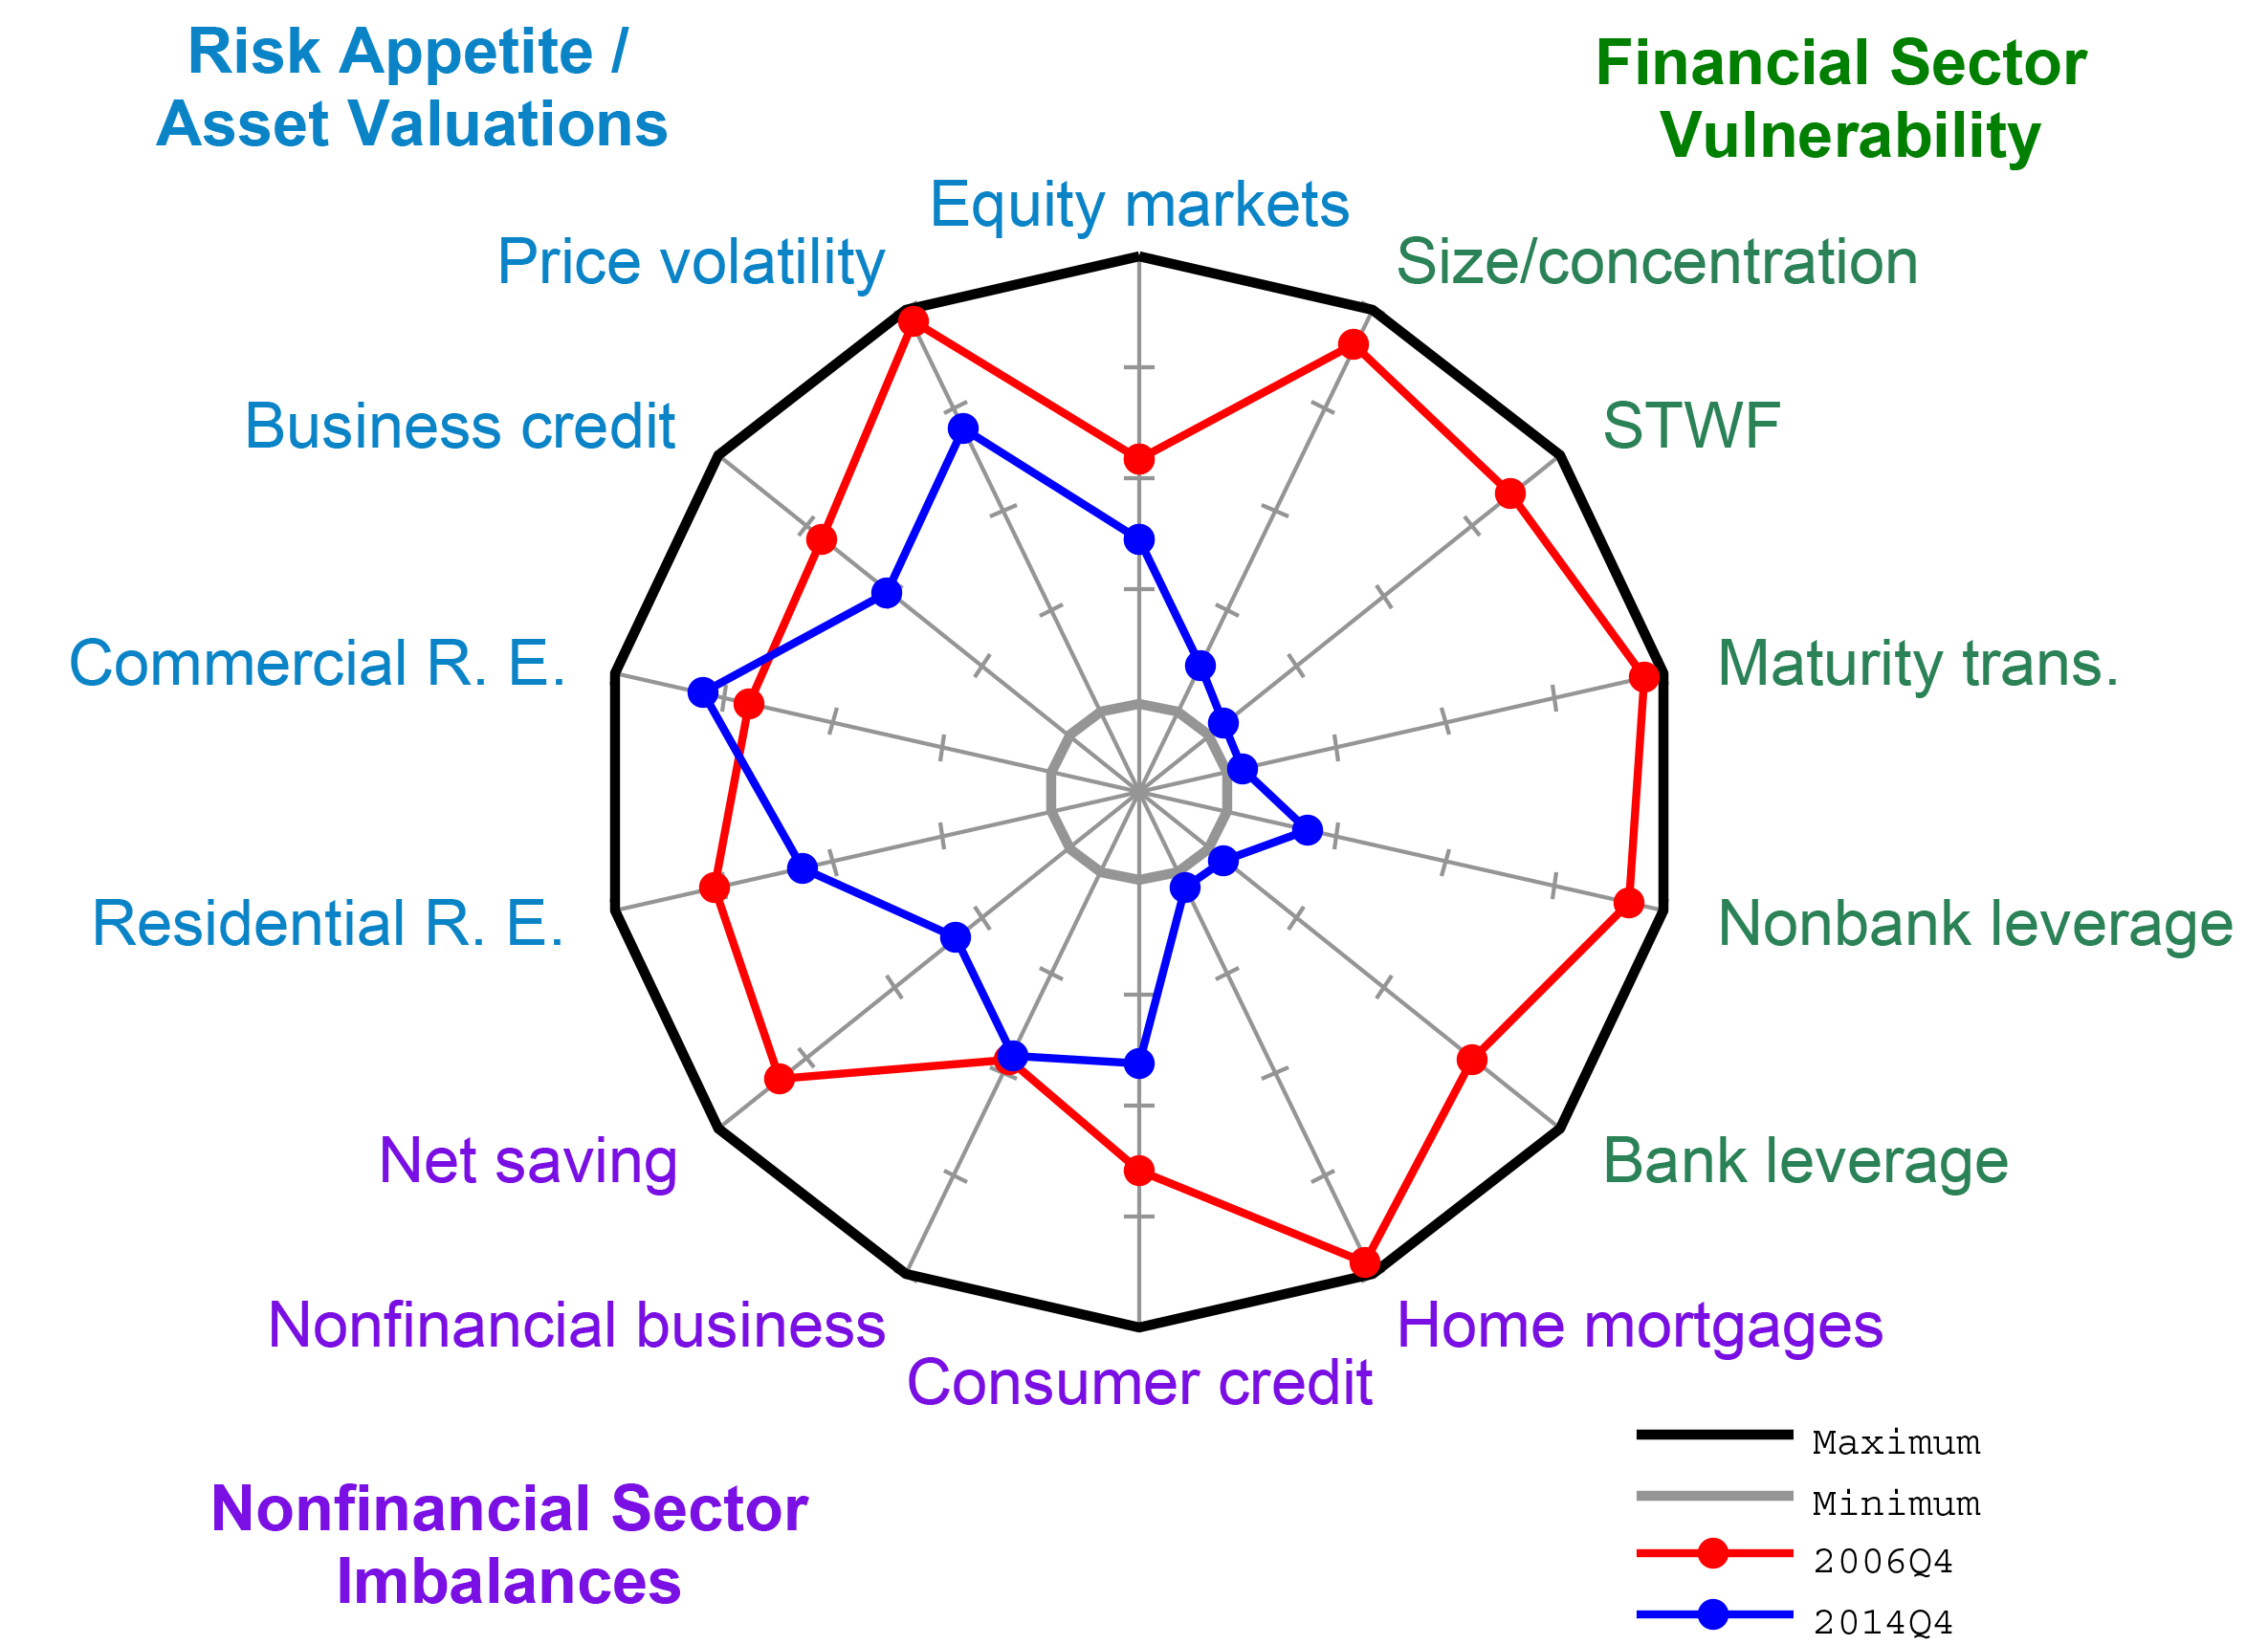 Frb feds notes mapping heat in the us financial system a summary figure 2 radar chart of the component sources of systemic vulnerability ccuart Choice Image